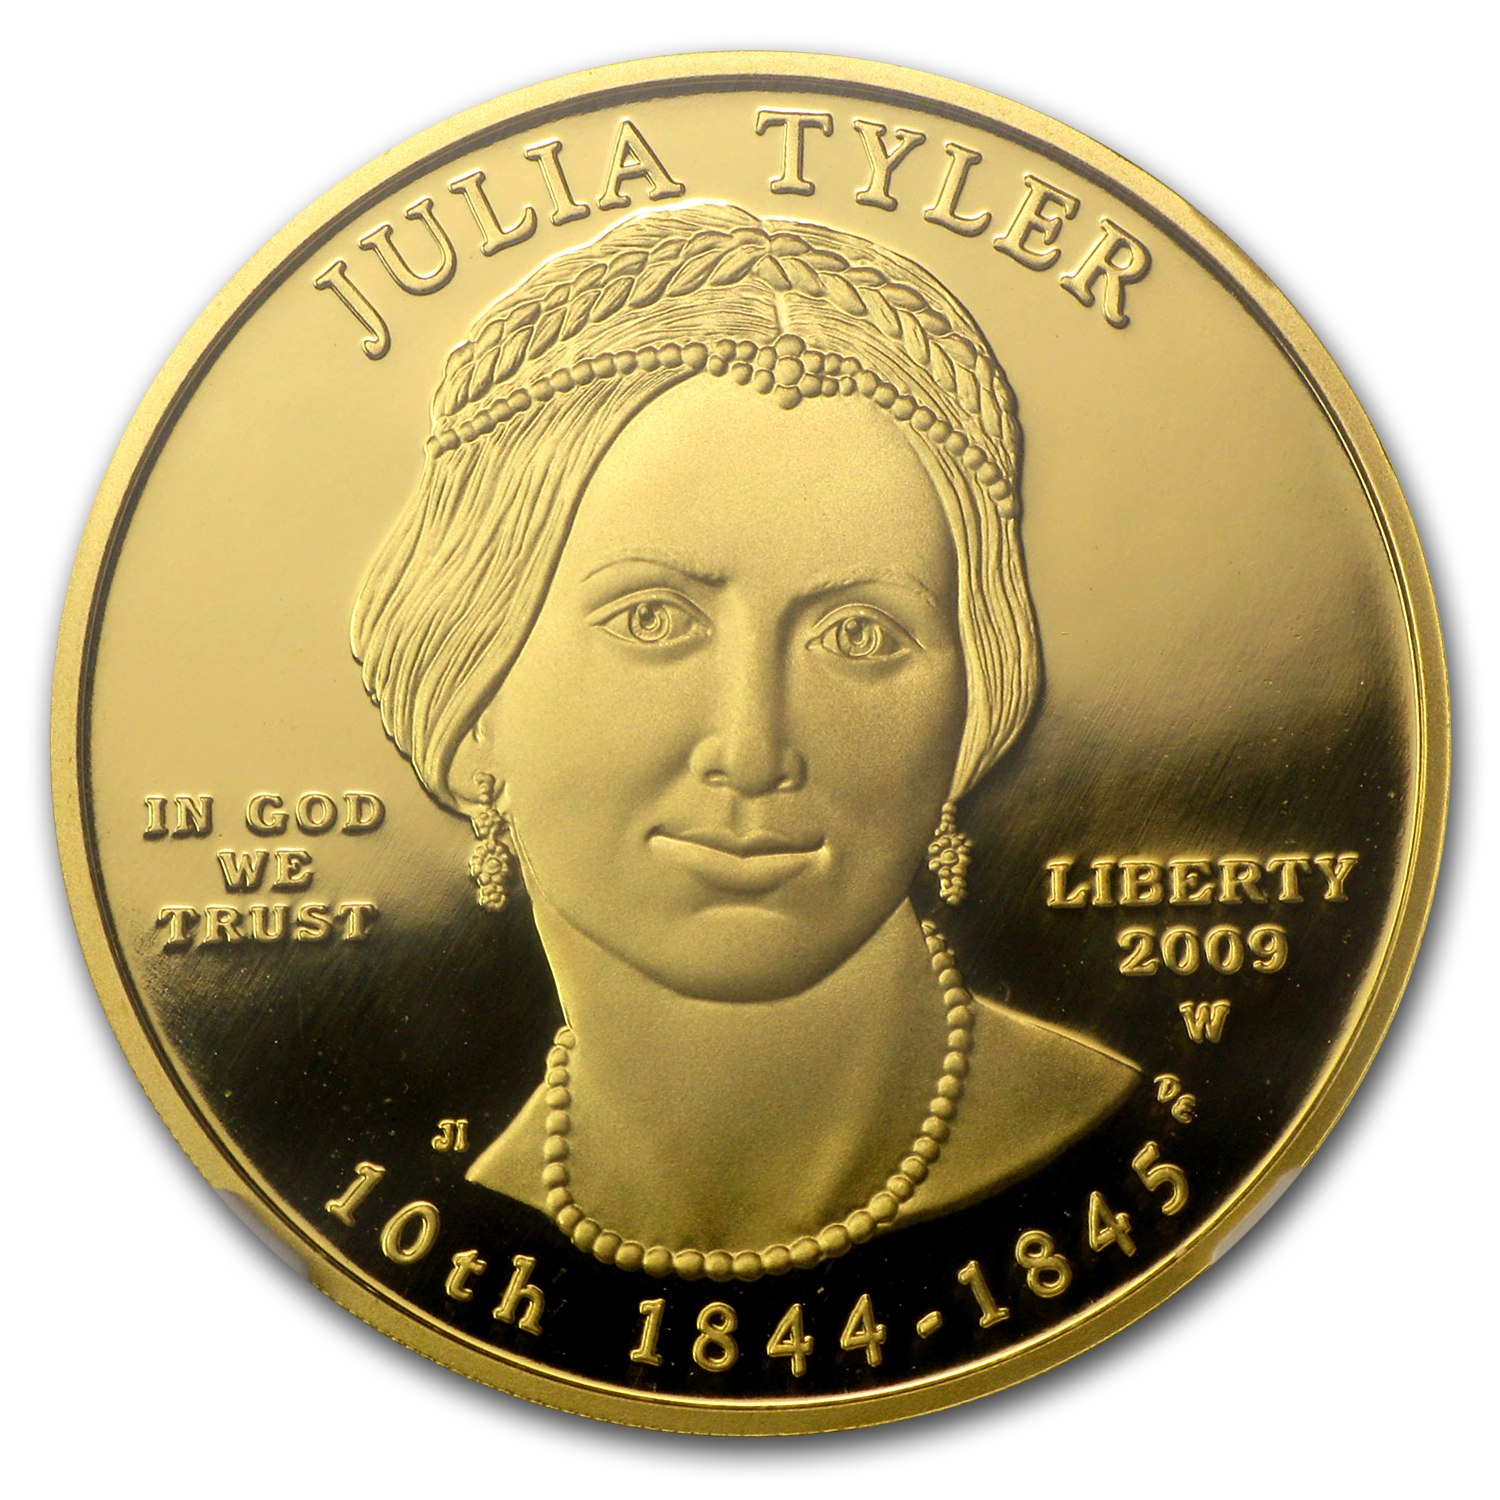 2009-W 1/2 oz Proof Gold Julia Tyler PF-70 NGC